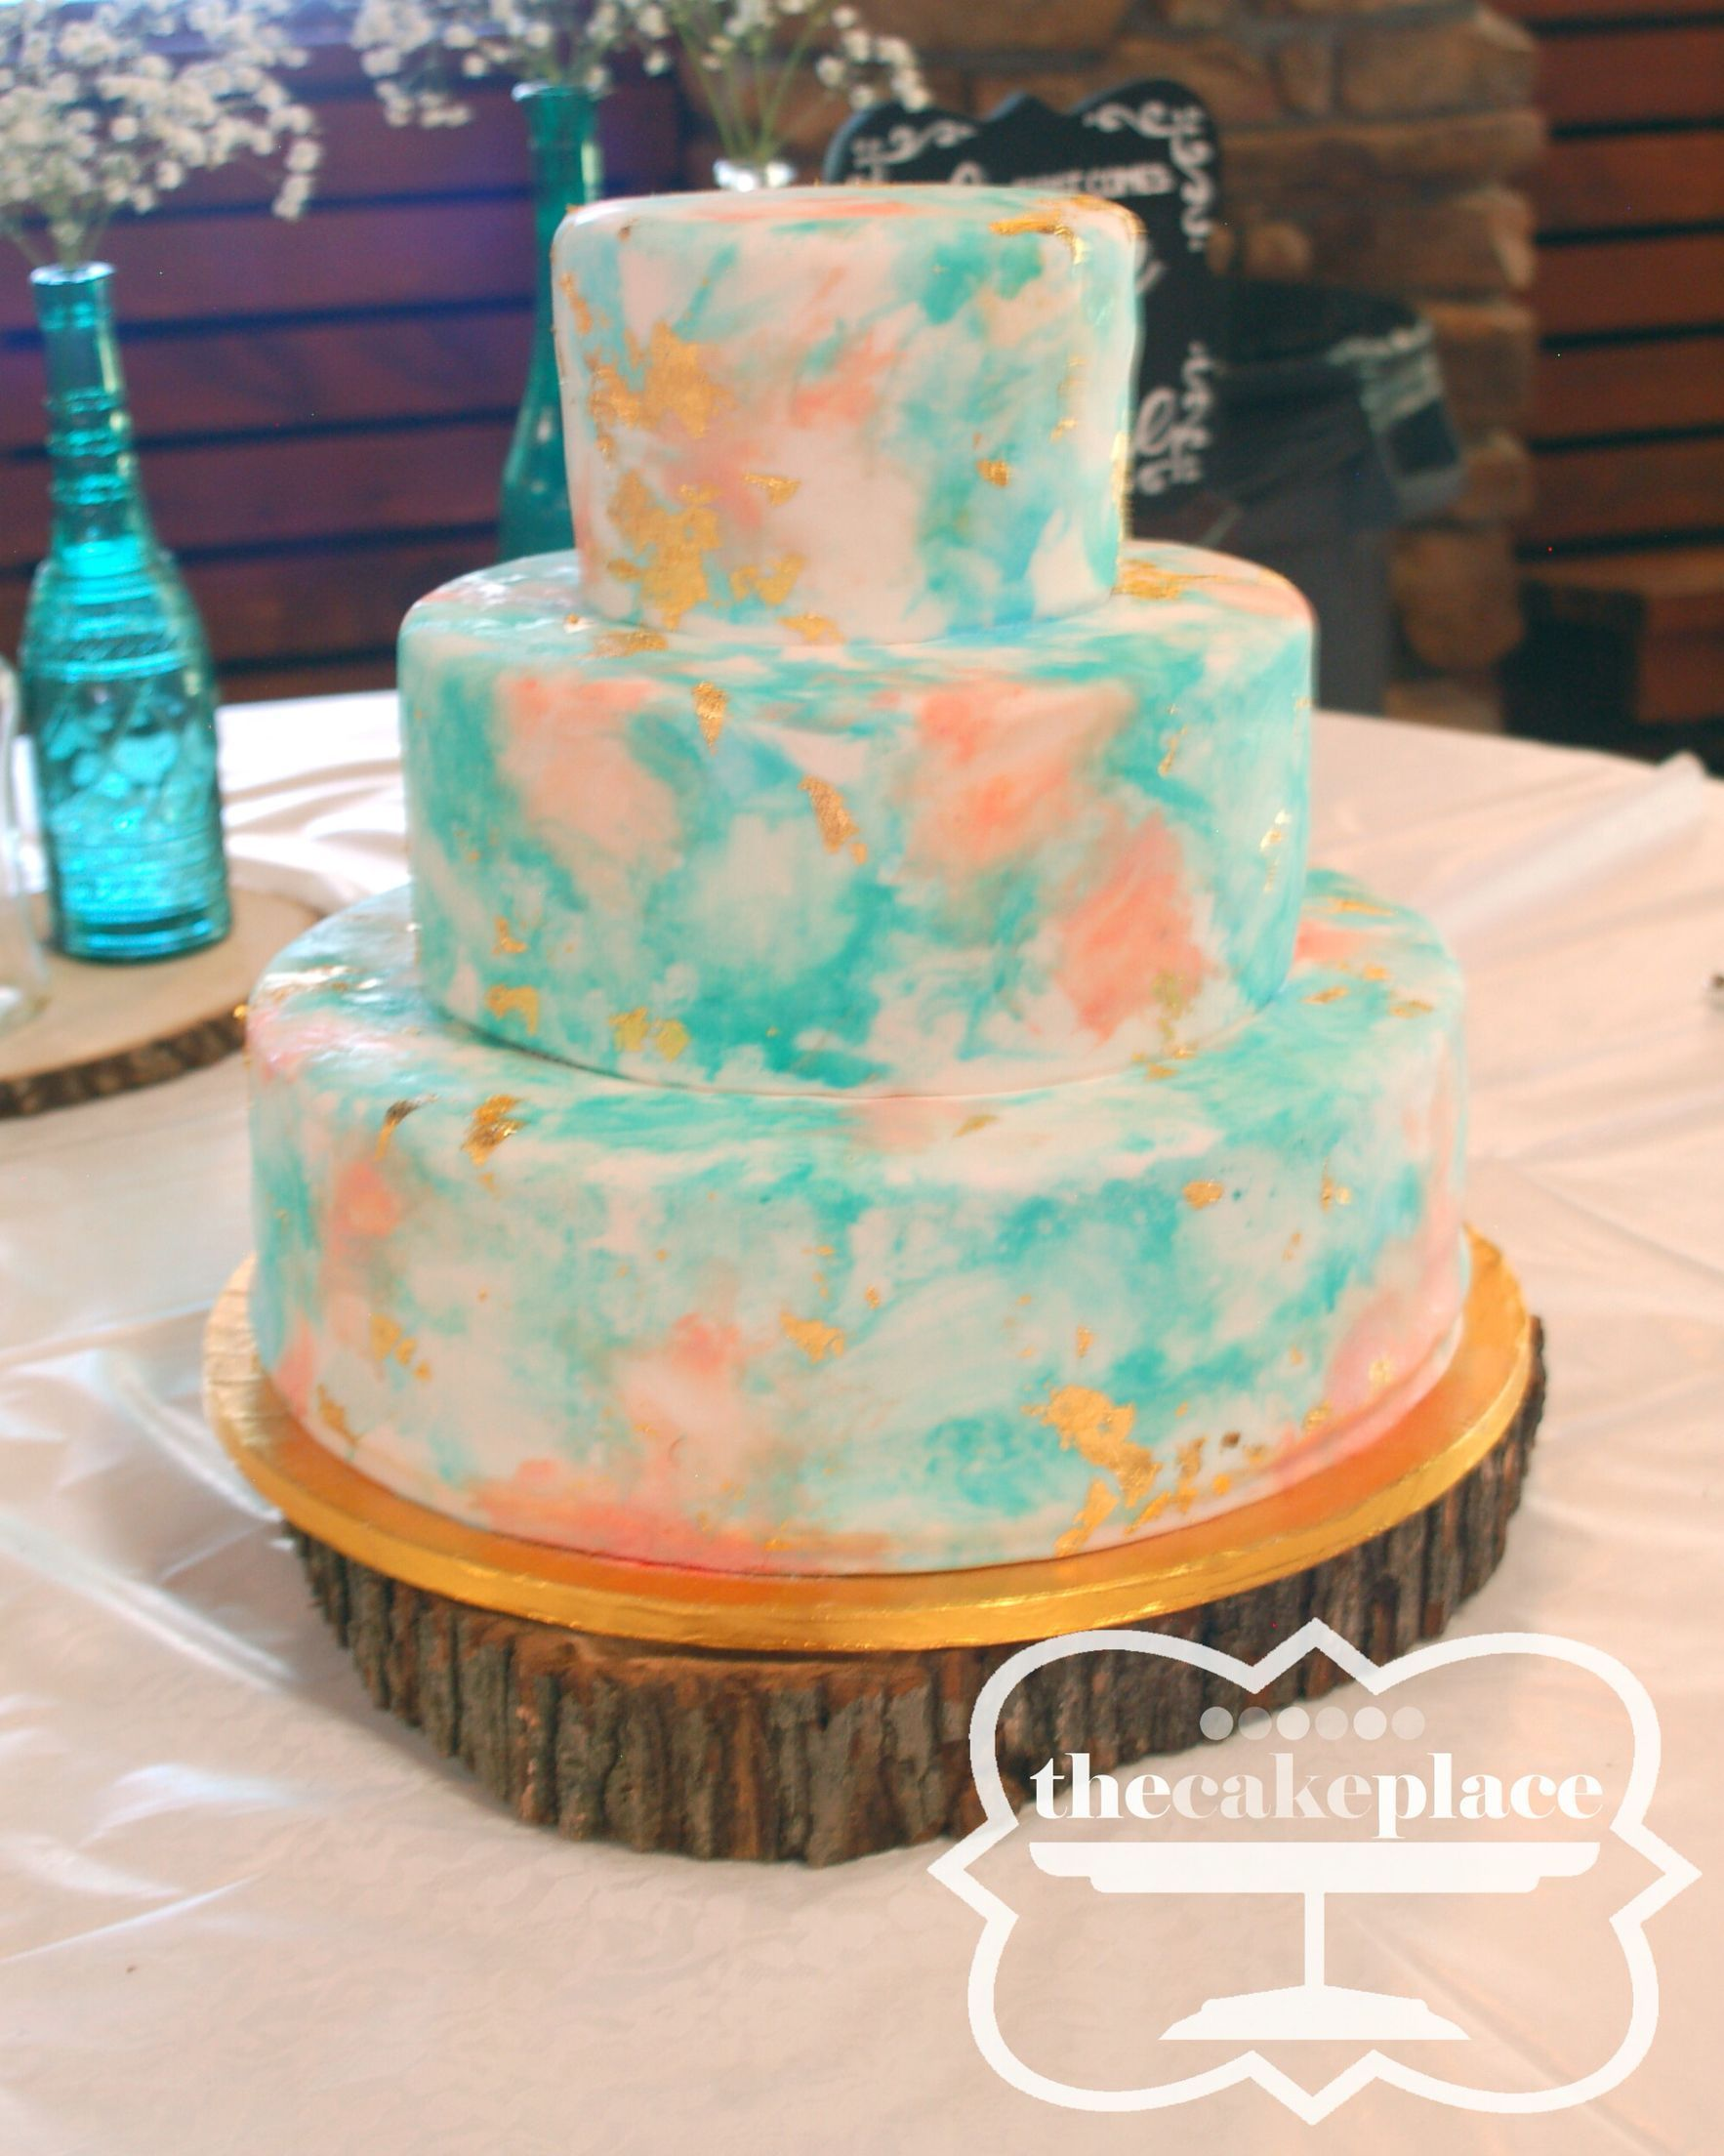 Turquoise, coral, and gold watercolor wedding cake | theCakePlace | Russellville, AR #turquoisecoralweddings Turquoise, coral, and gold watercolor wedding cake | theCakePlace | Russellville, AR #turquoisecoralweddings